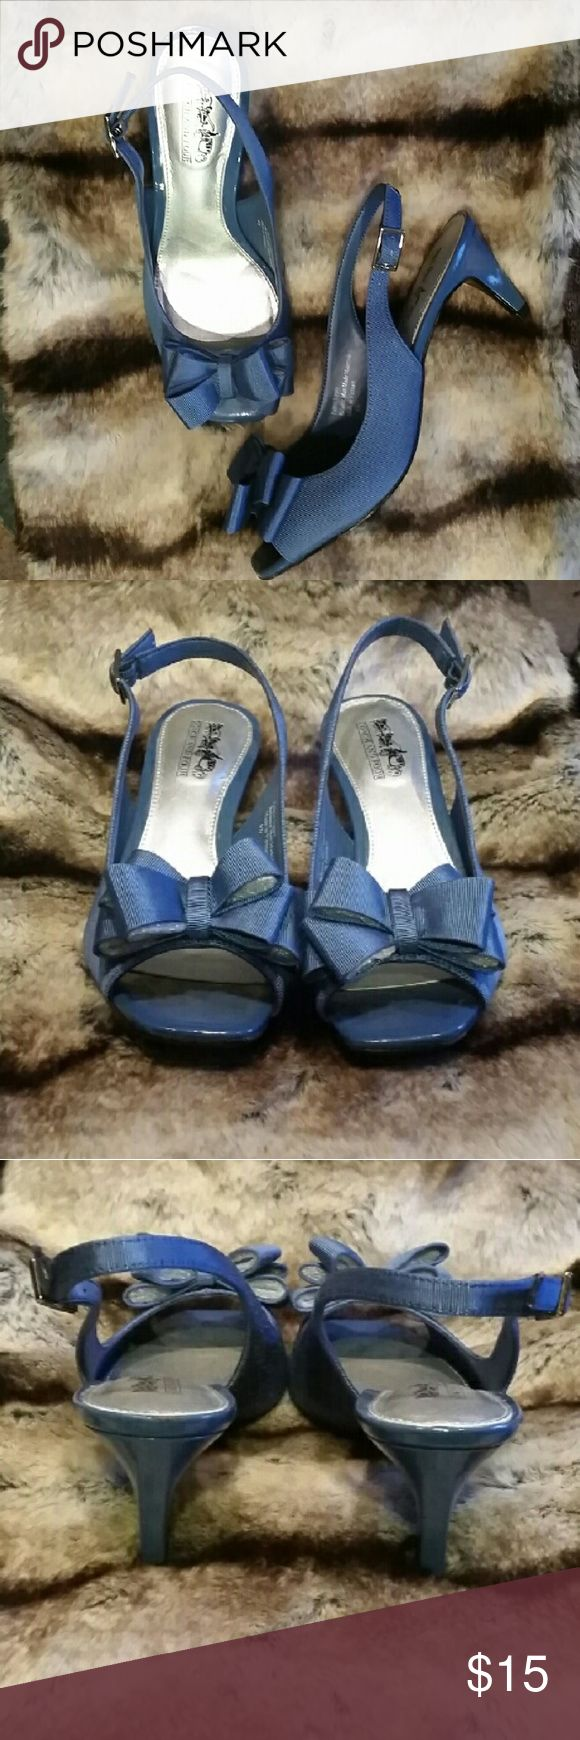 "Coach and Four Blue Slingback Peeptoe Pumps 6.5 M Never Worn.  Small Scuff Mark to Left Interior Shoe. Light Blue Textured Satin-Like Material 2.75"" Heel Coach and Four  Shoes Heels"